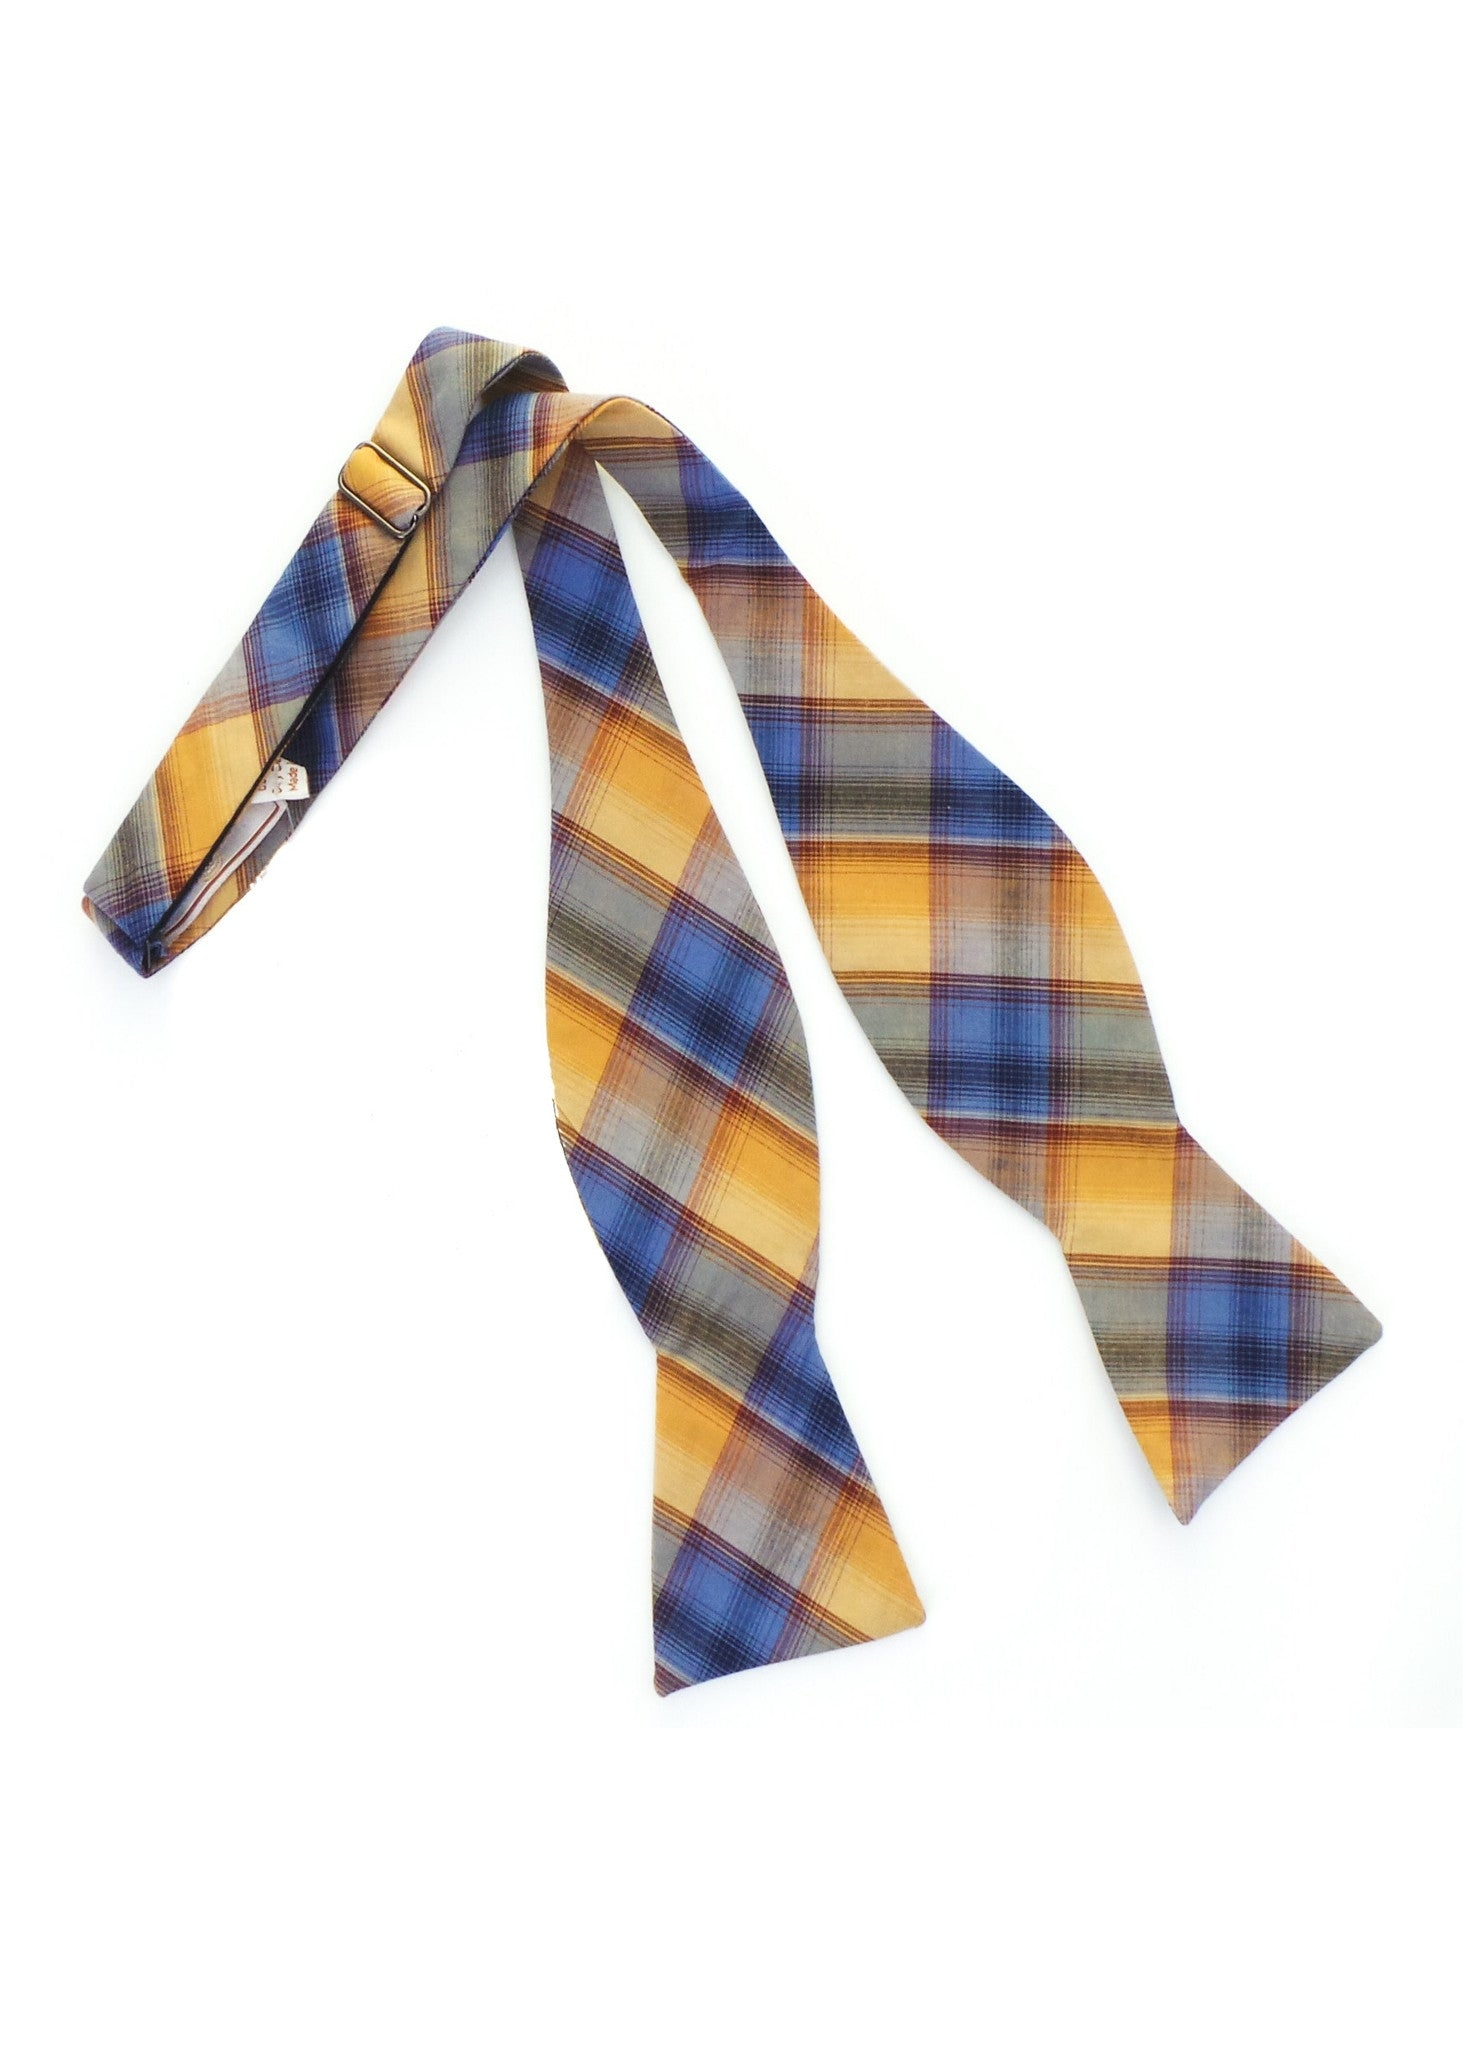 BKLYN Made in NY Cotton Plaid Bow Tie